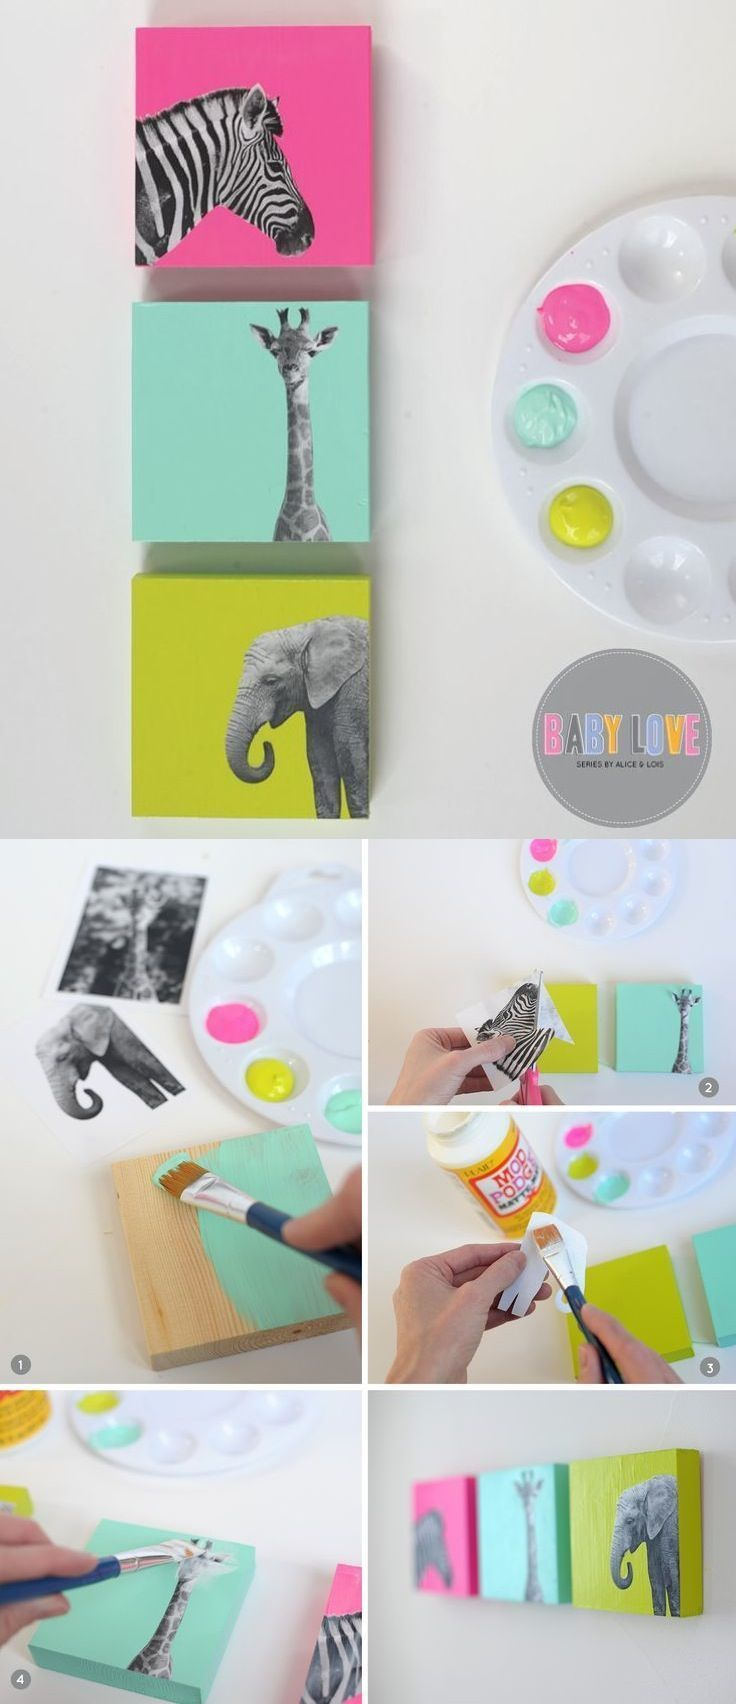 DIY your photo charms, 100% compatible with Pandora bracelets. Make your gifts special. Hello, everyone! Prettydesigns continues to bring you something cute for the life. There are cutest DIY projects in today's post. You can not only find some DIY ideas, but also finish some cute projects for your home. Here are the step-by-step projects. They will get everything funny as well as pretty if they are taken[Read the Rest]